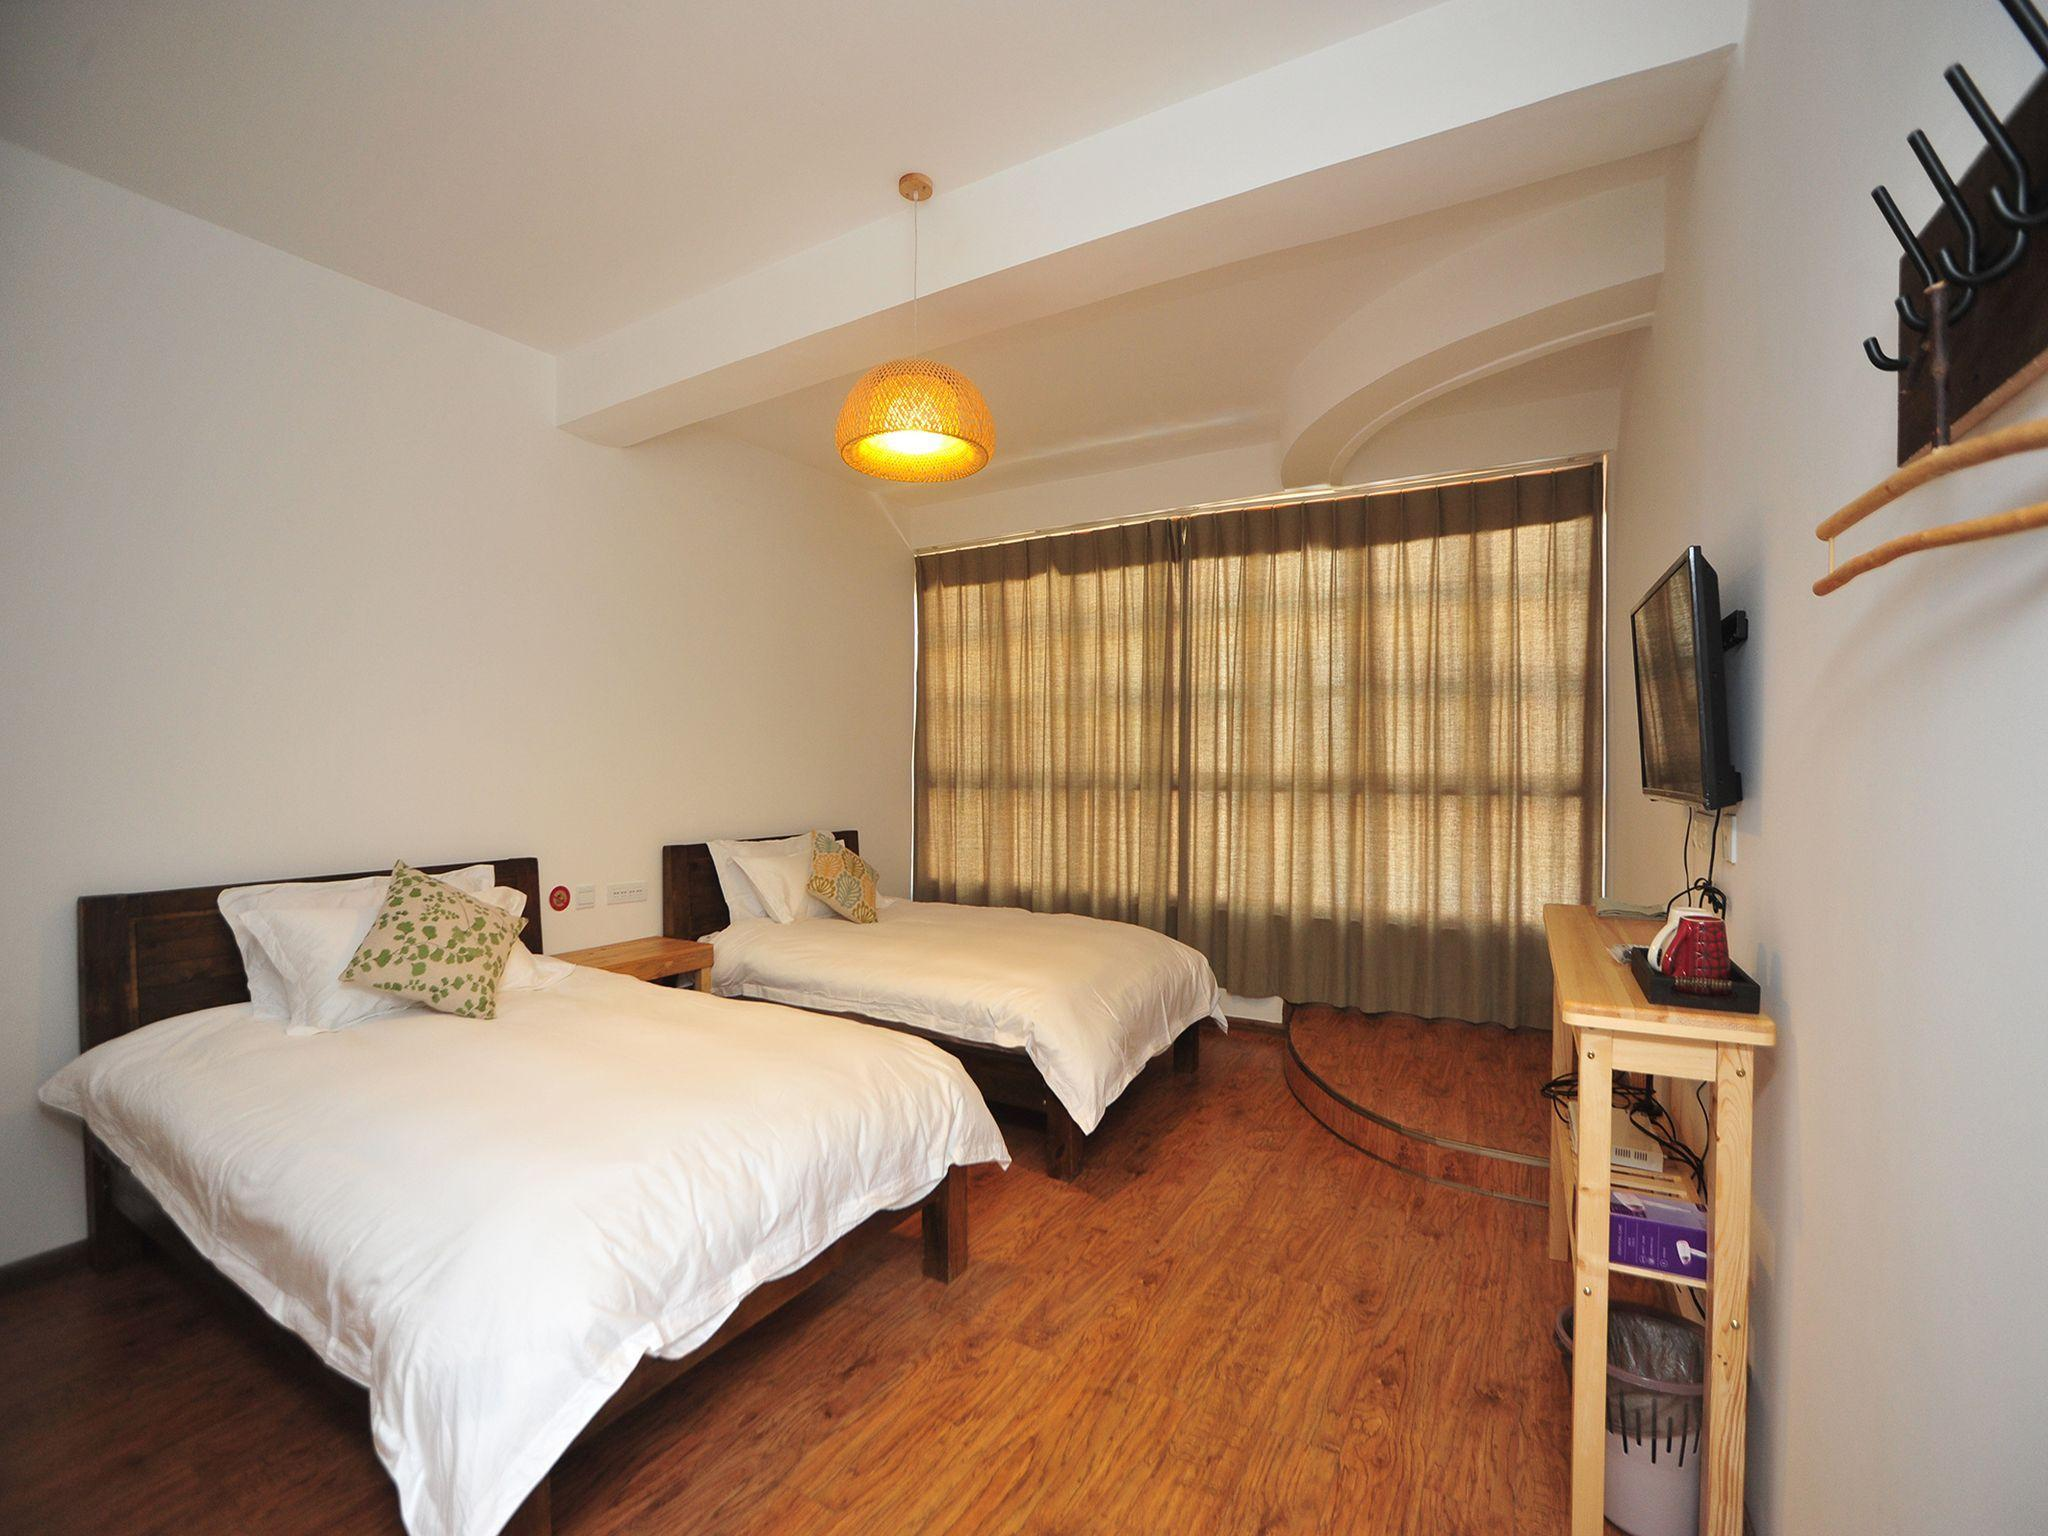 Kunming The Hump Youth Hostel Hotel - Deals, Photos & Reviews